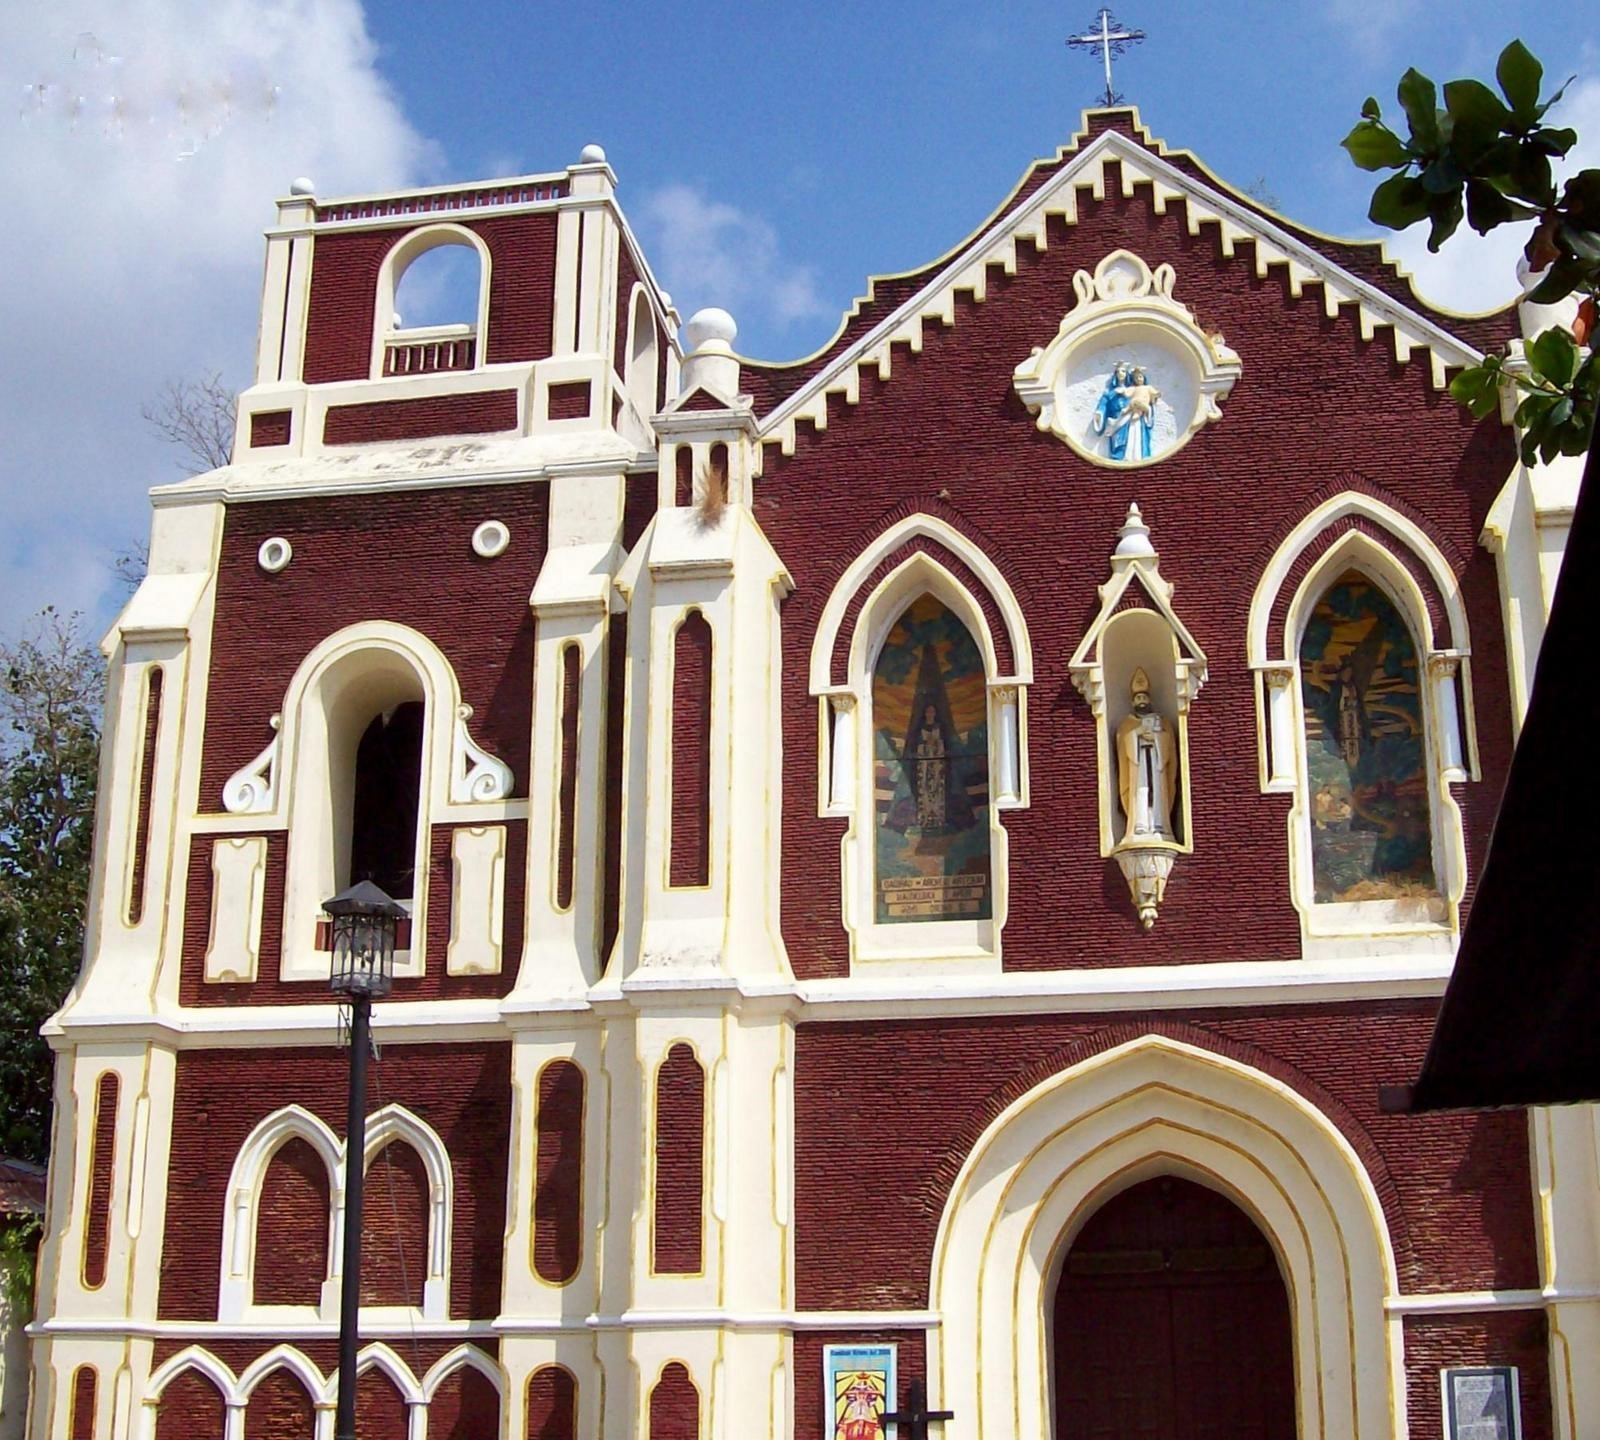 St. Augustin in Bantay - Luzon